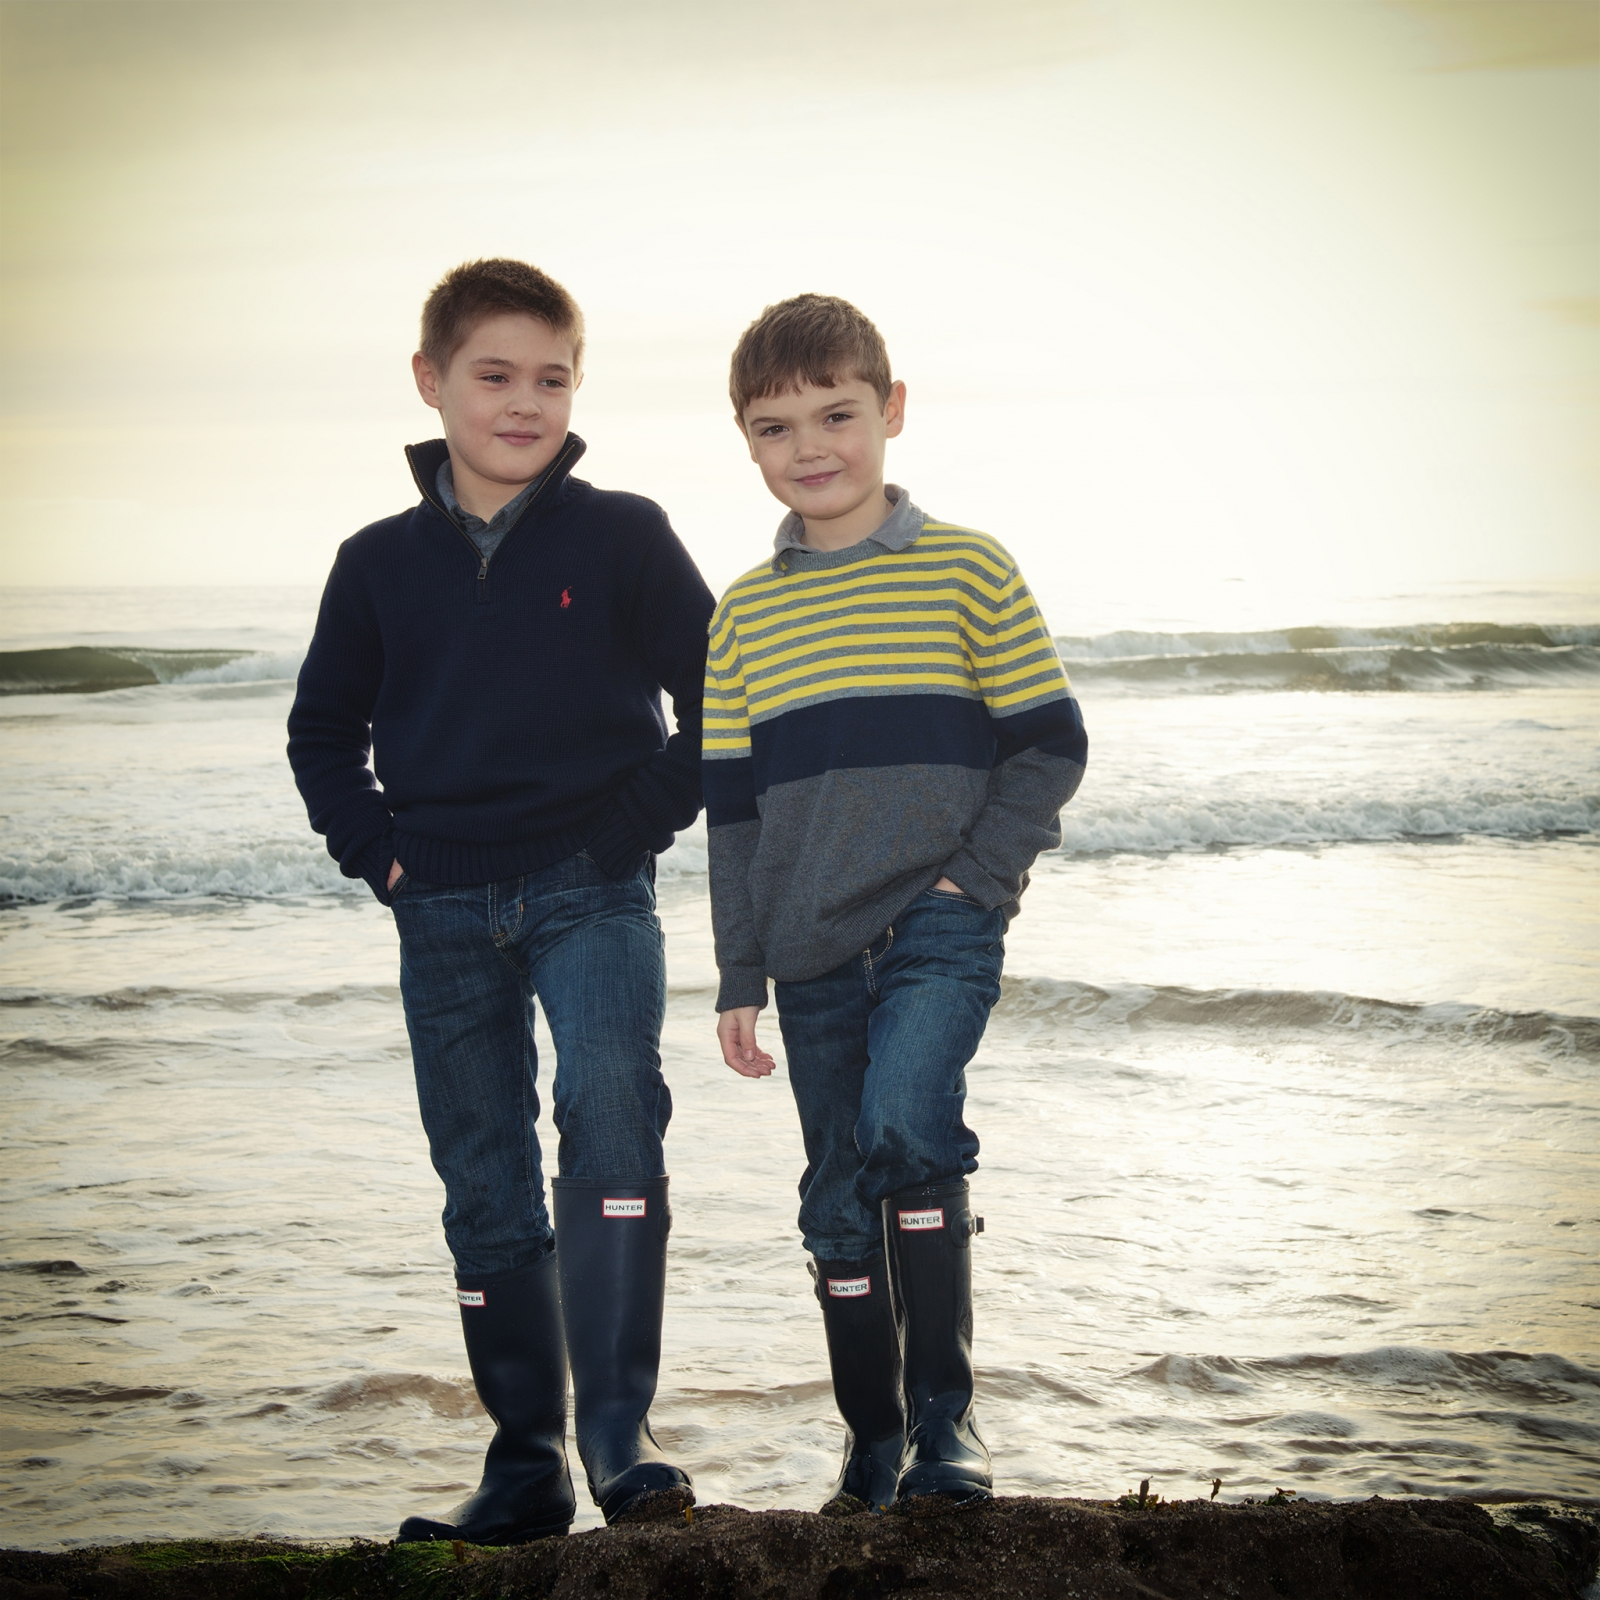 Lifestyle location portrait of boys on the beach, brothers